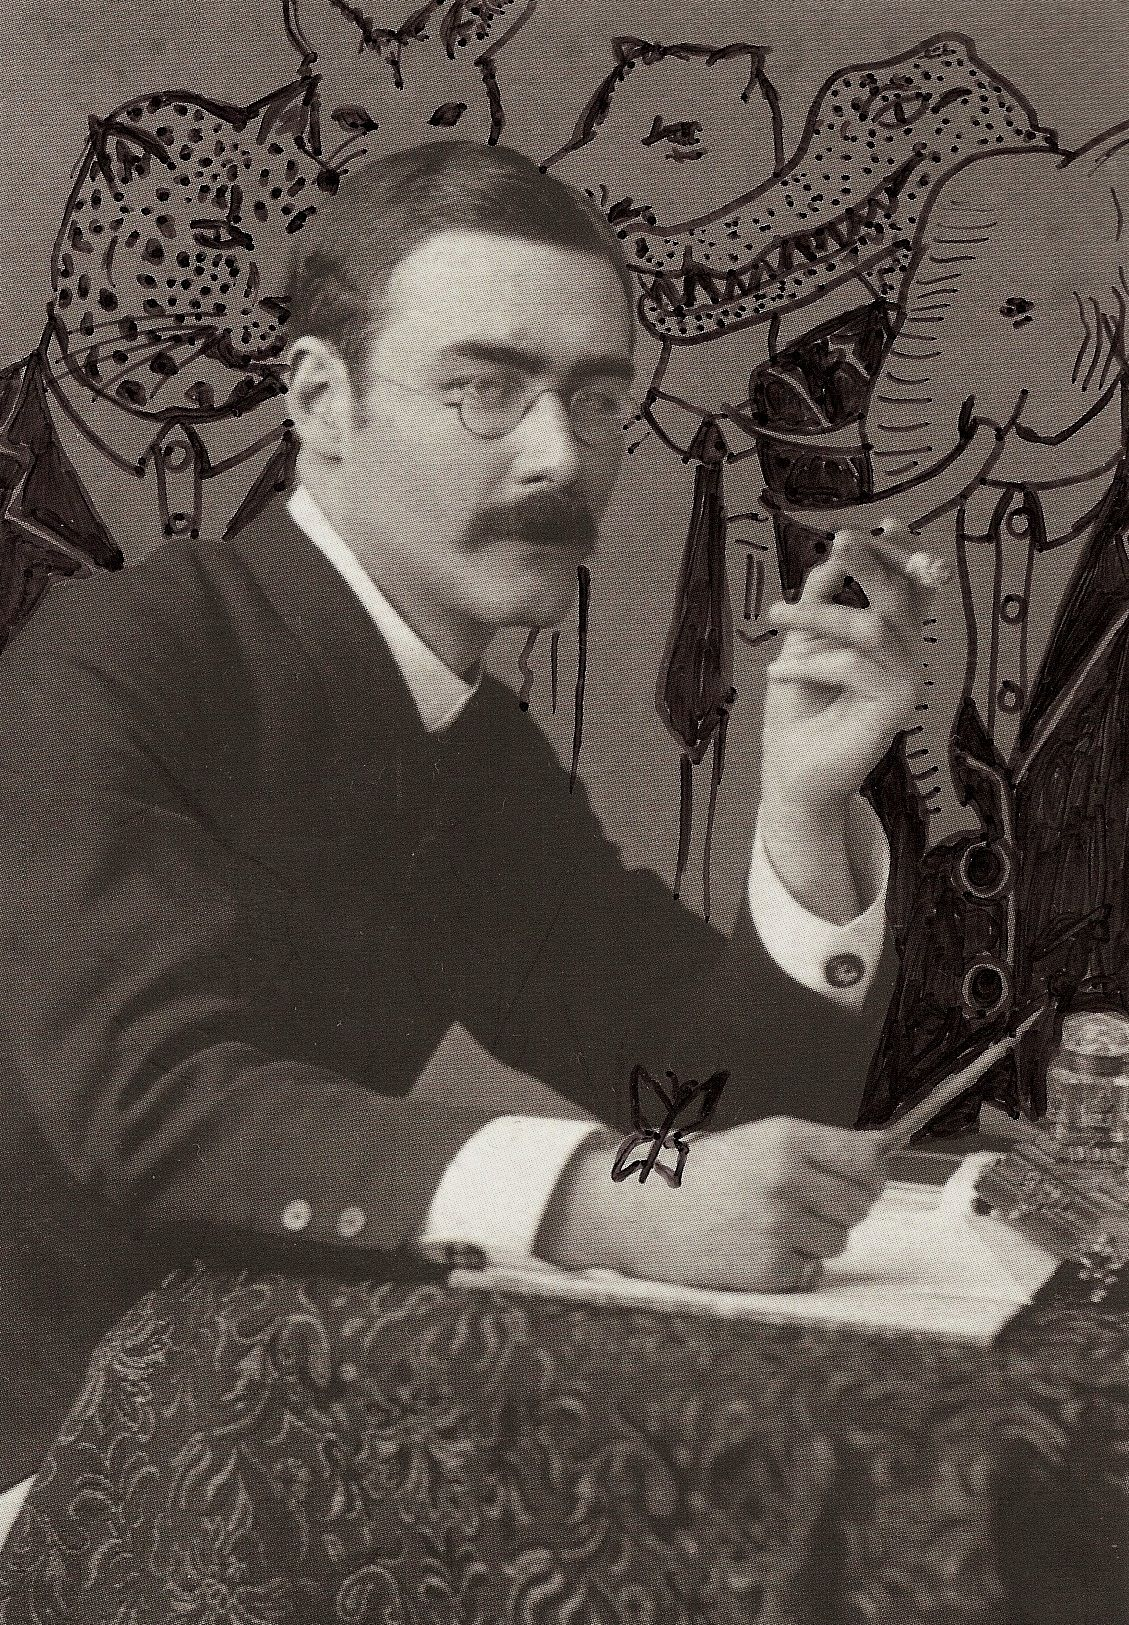 Rudyard Kipling 1865 1936 Was An English Poet Short Story Writer And Novelist Chiefly Remembered For His Celebration Of British Imp Portraits De Celebrites